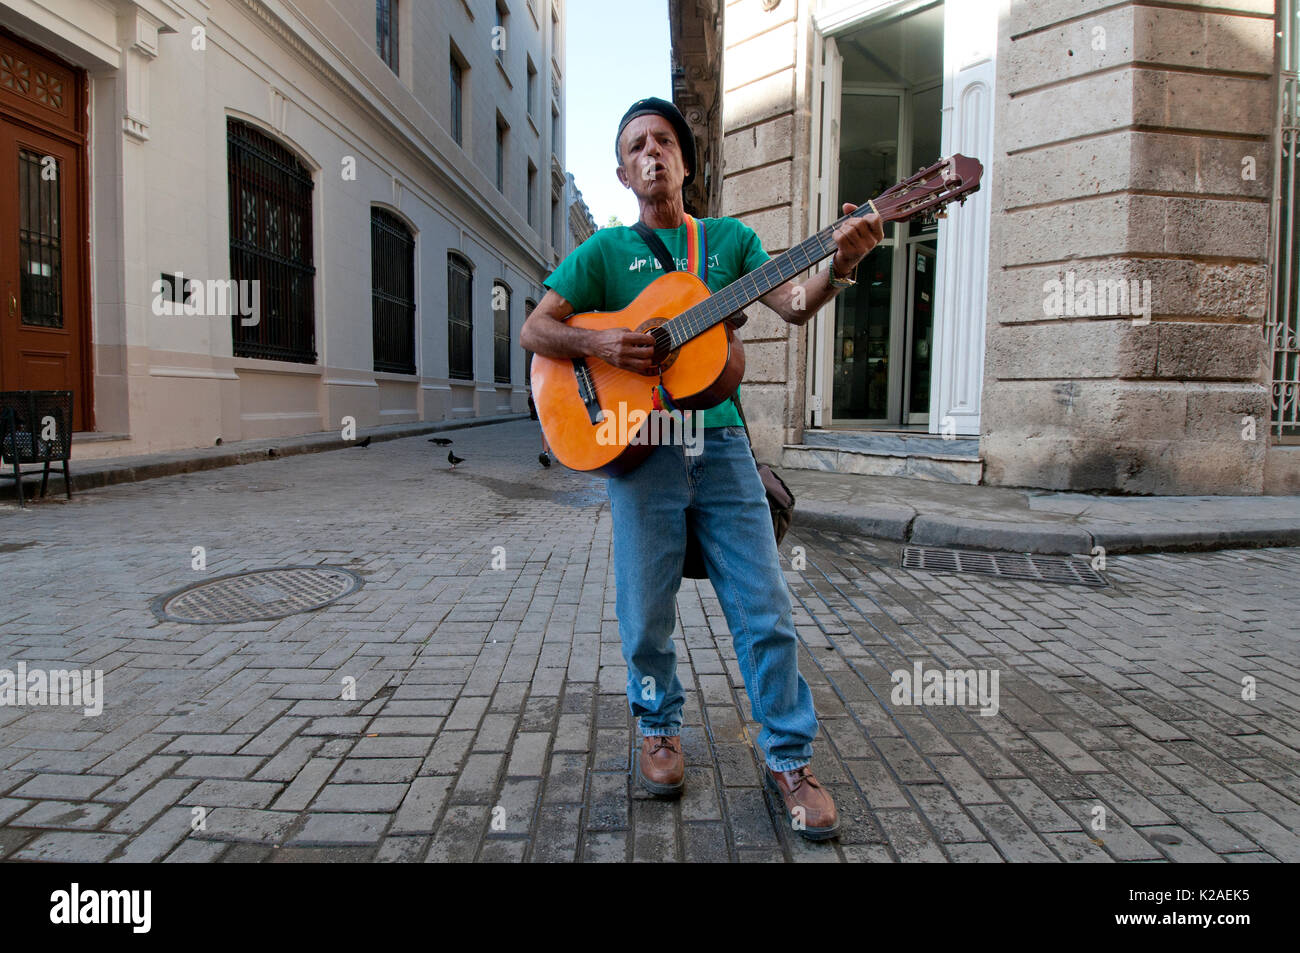 Street musician with guitar in old town Havana Cuba - Stock Image